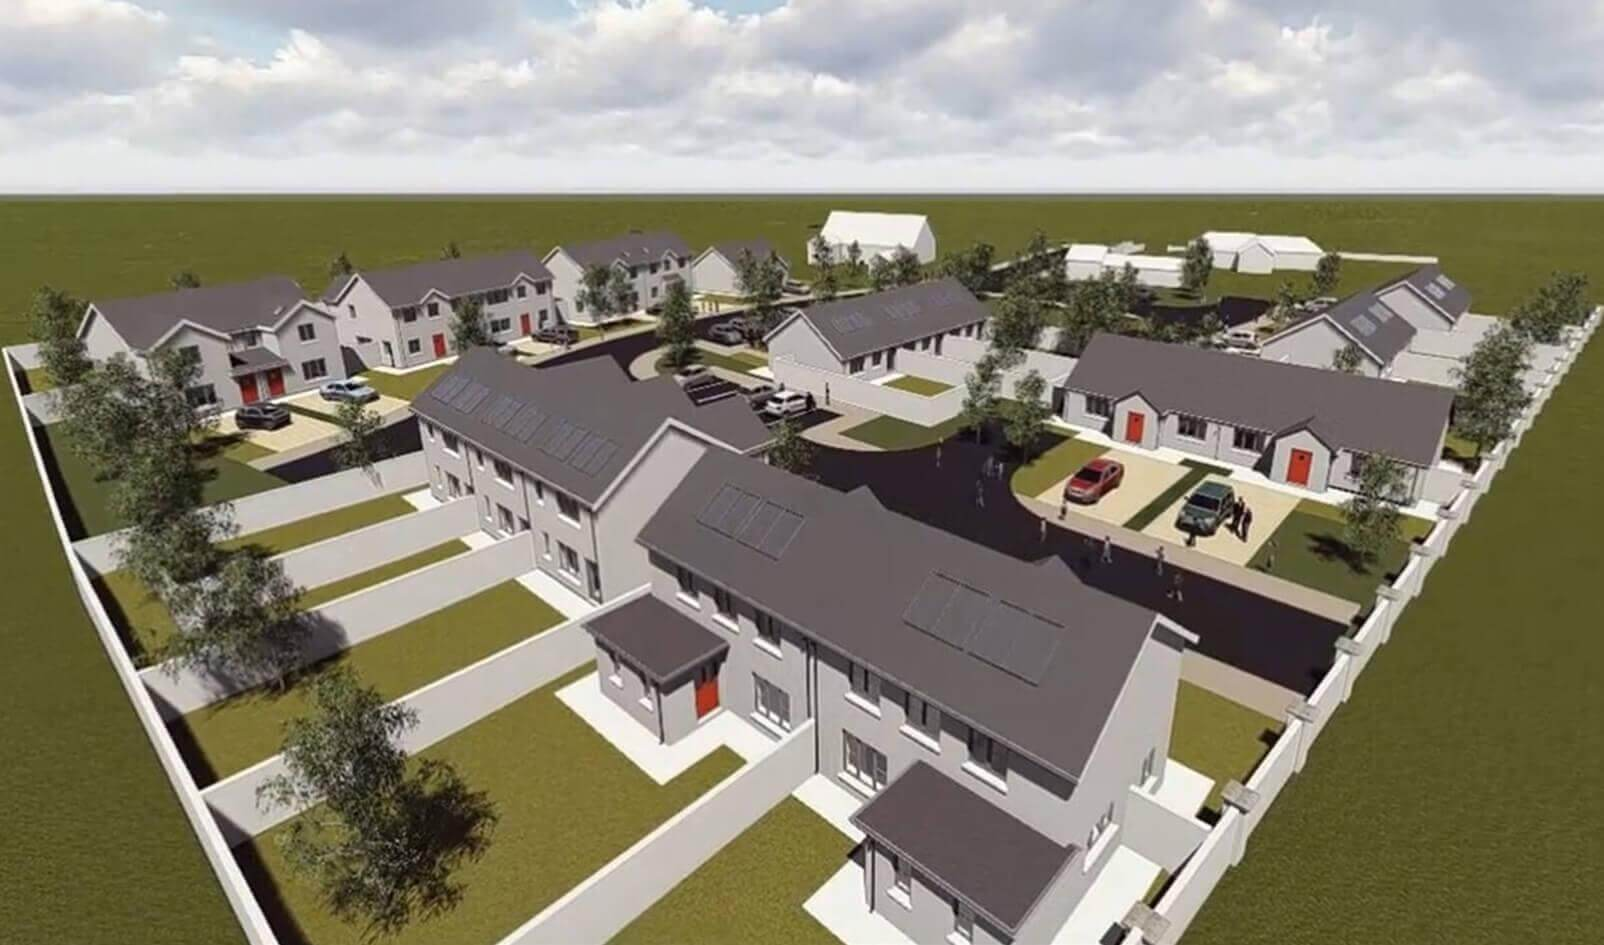 Slider Image Residential Cjfa Architecture Housing Ballinroad Dungarvan Co  Waterford